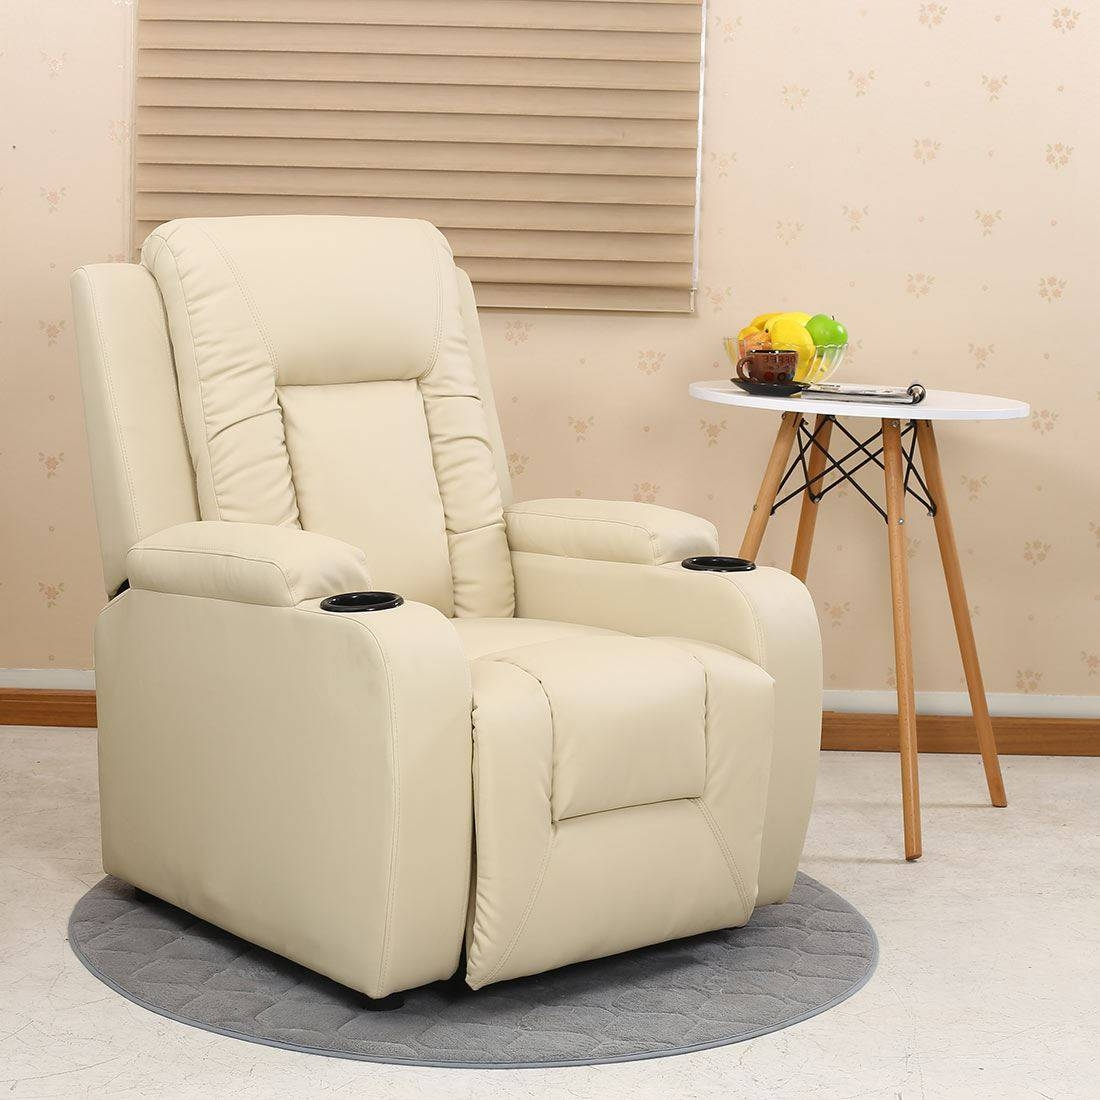 Oscar Leather Recliner W Drink Holders Armchair Sofa Chair intended for Sofas With Drink Holder (Image 9 of 15)